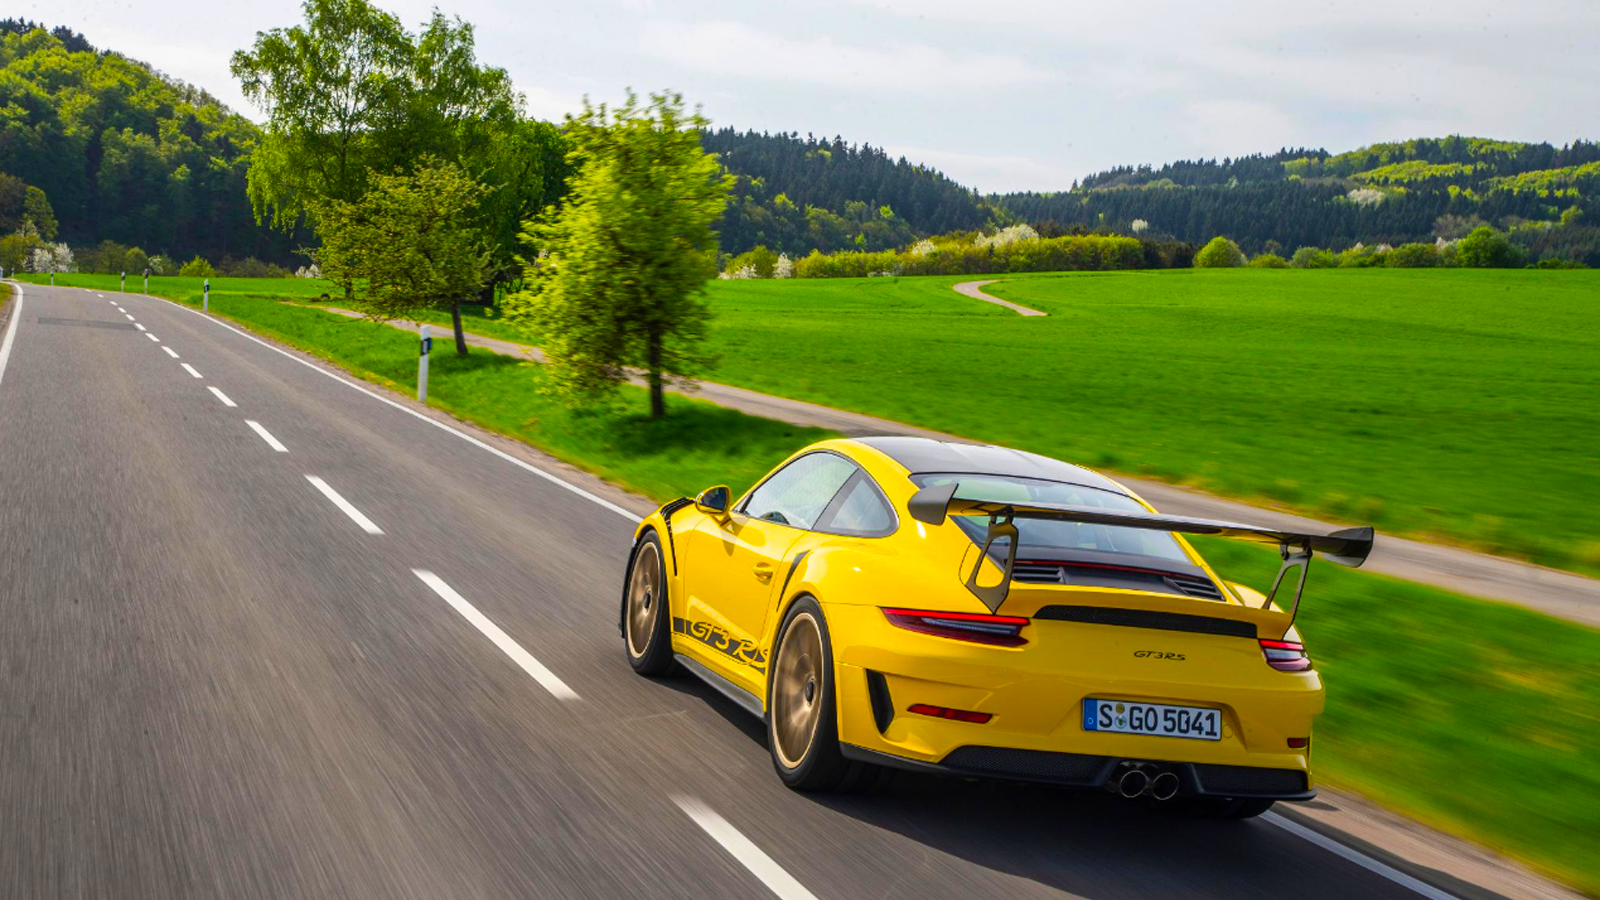 2019 911 GT3 RS Gets a Bump With Weissach Package